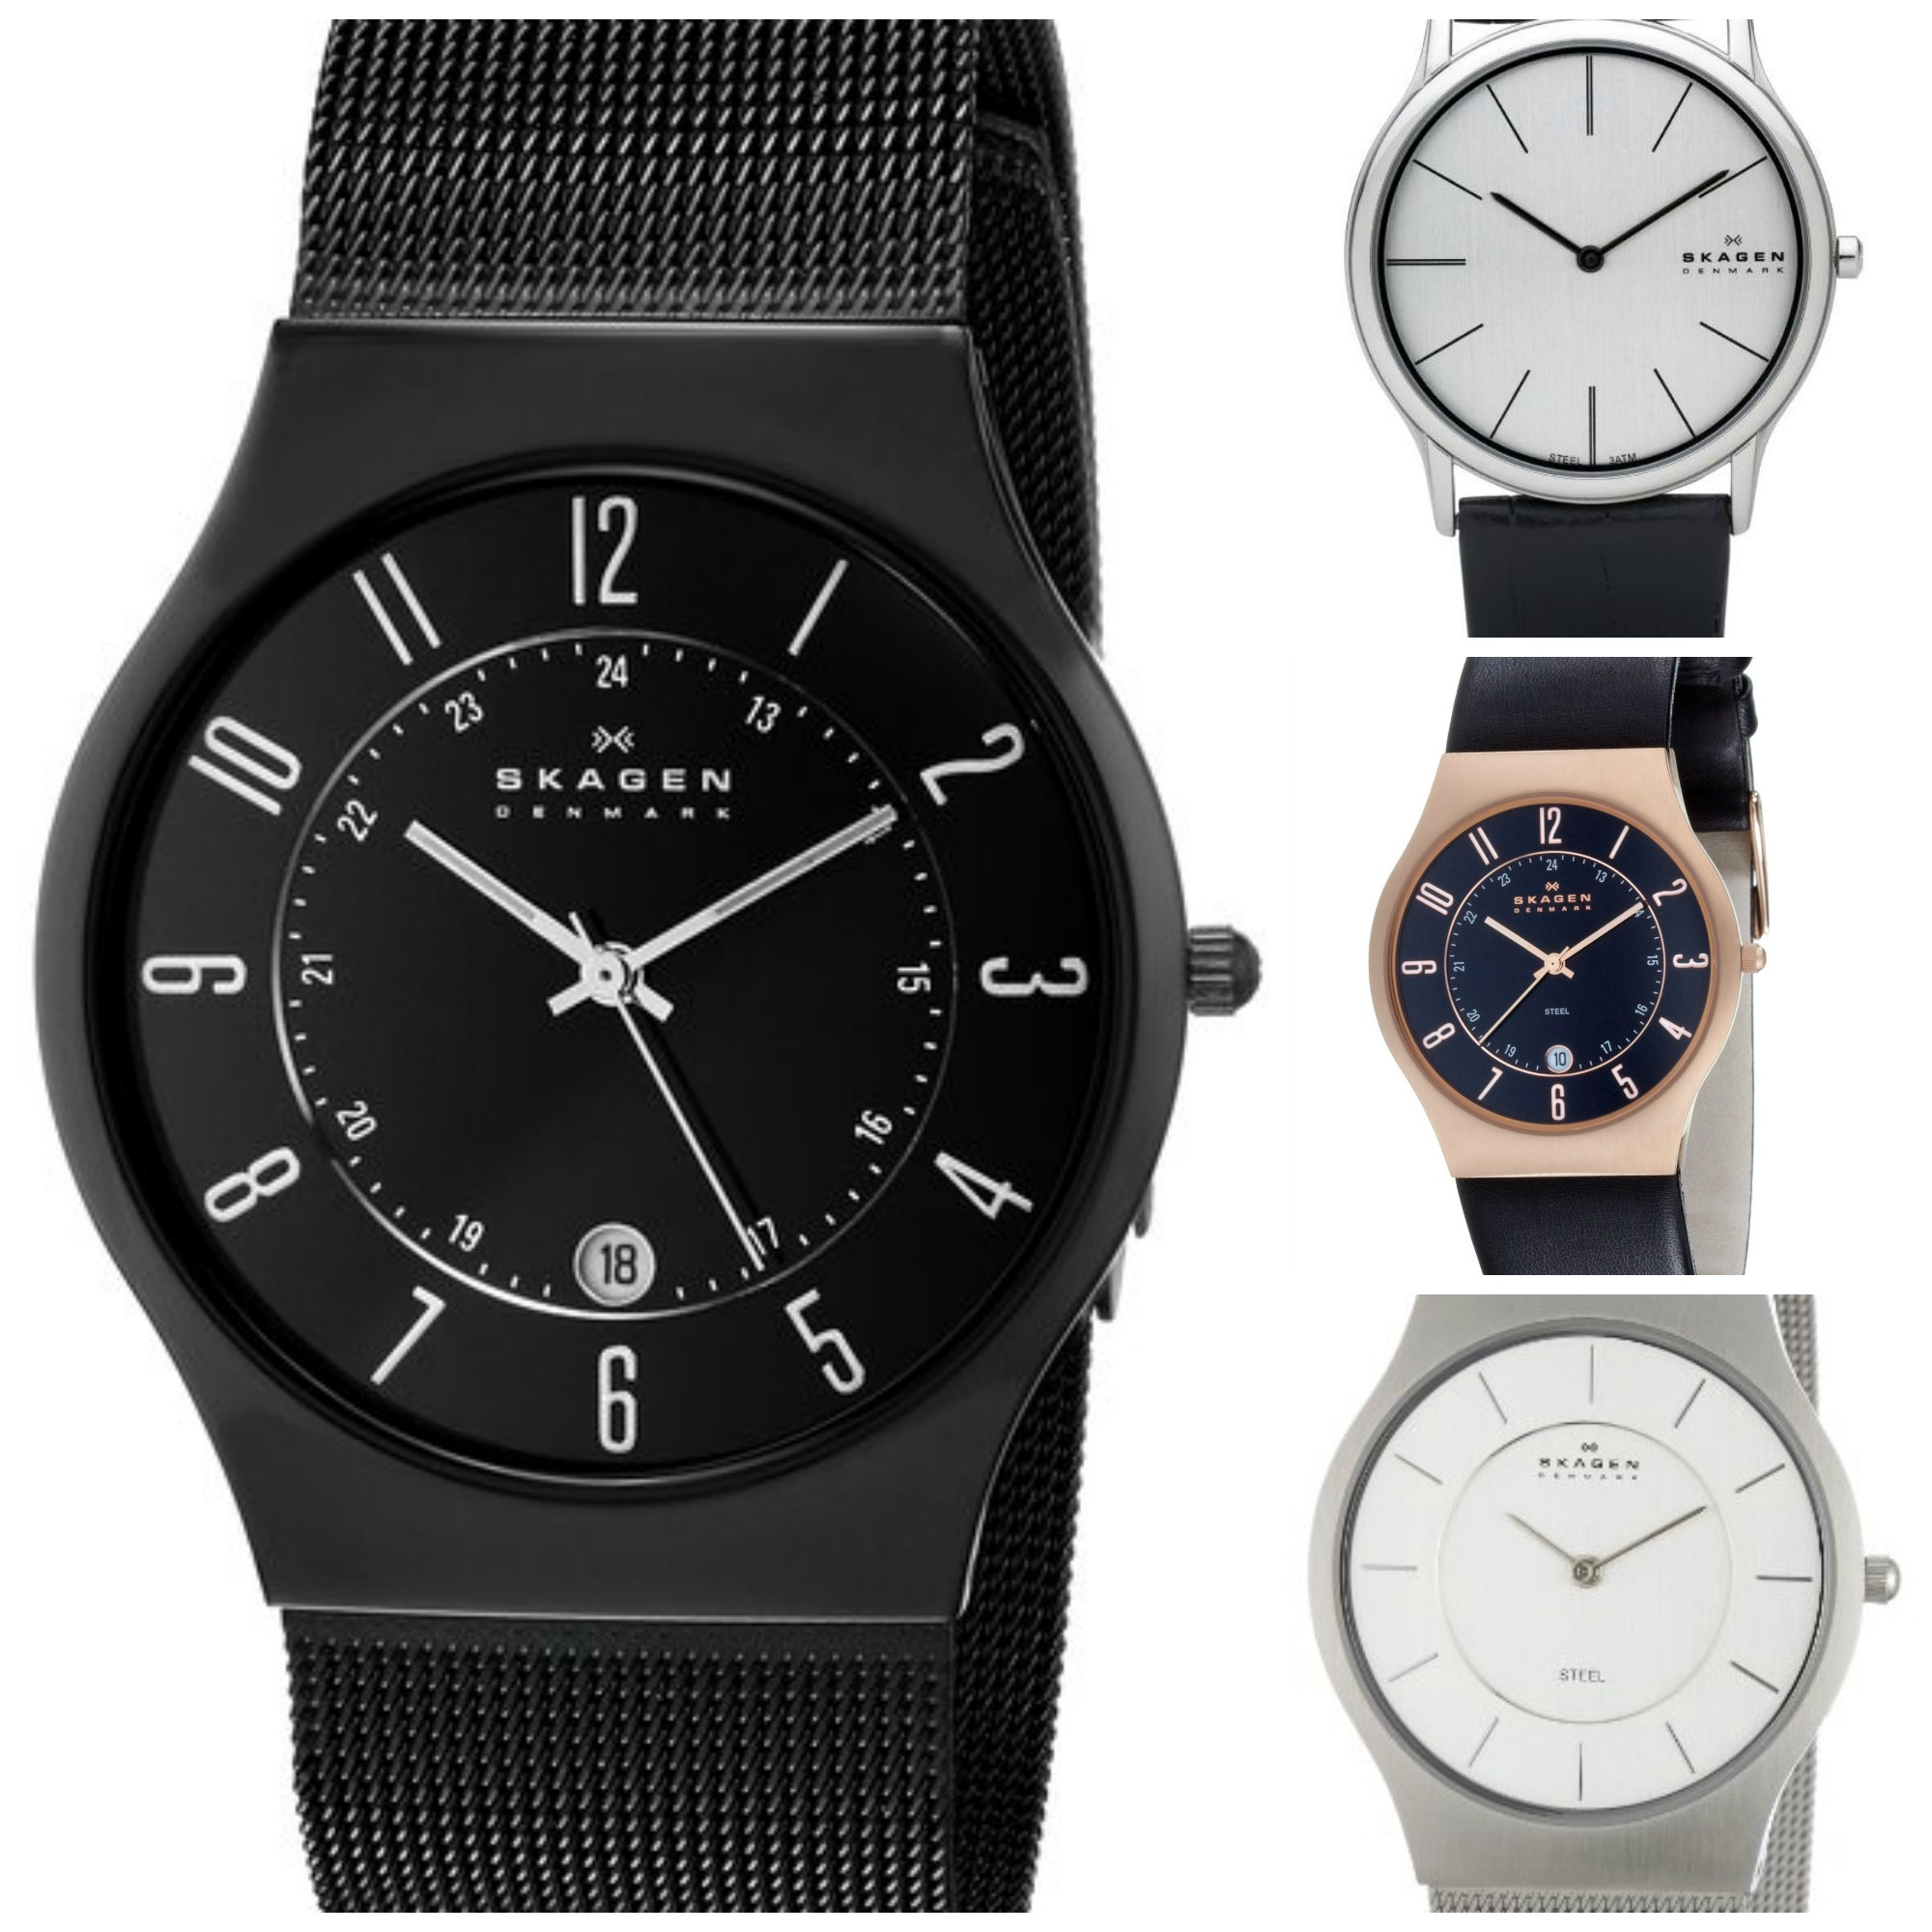 occasions best starter series those by when chrono make lighter the a is worn and reviews colours watches for to conversation statement you watch waterproof crownarch want special saved wyca with this true